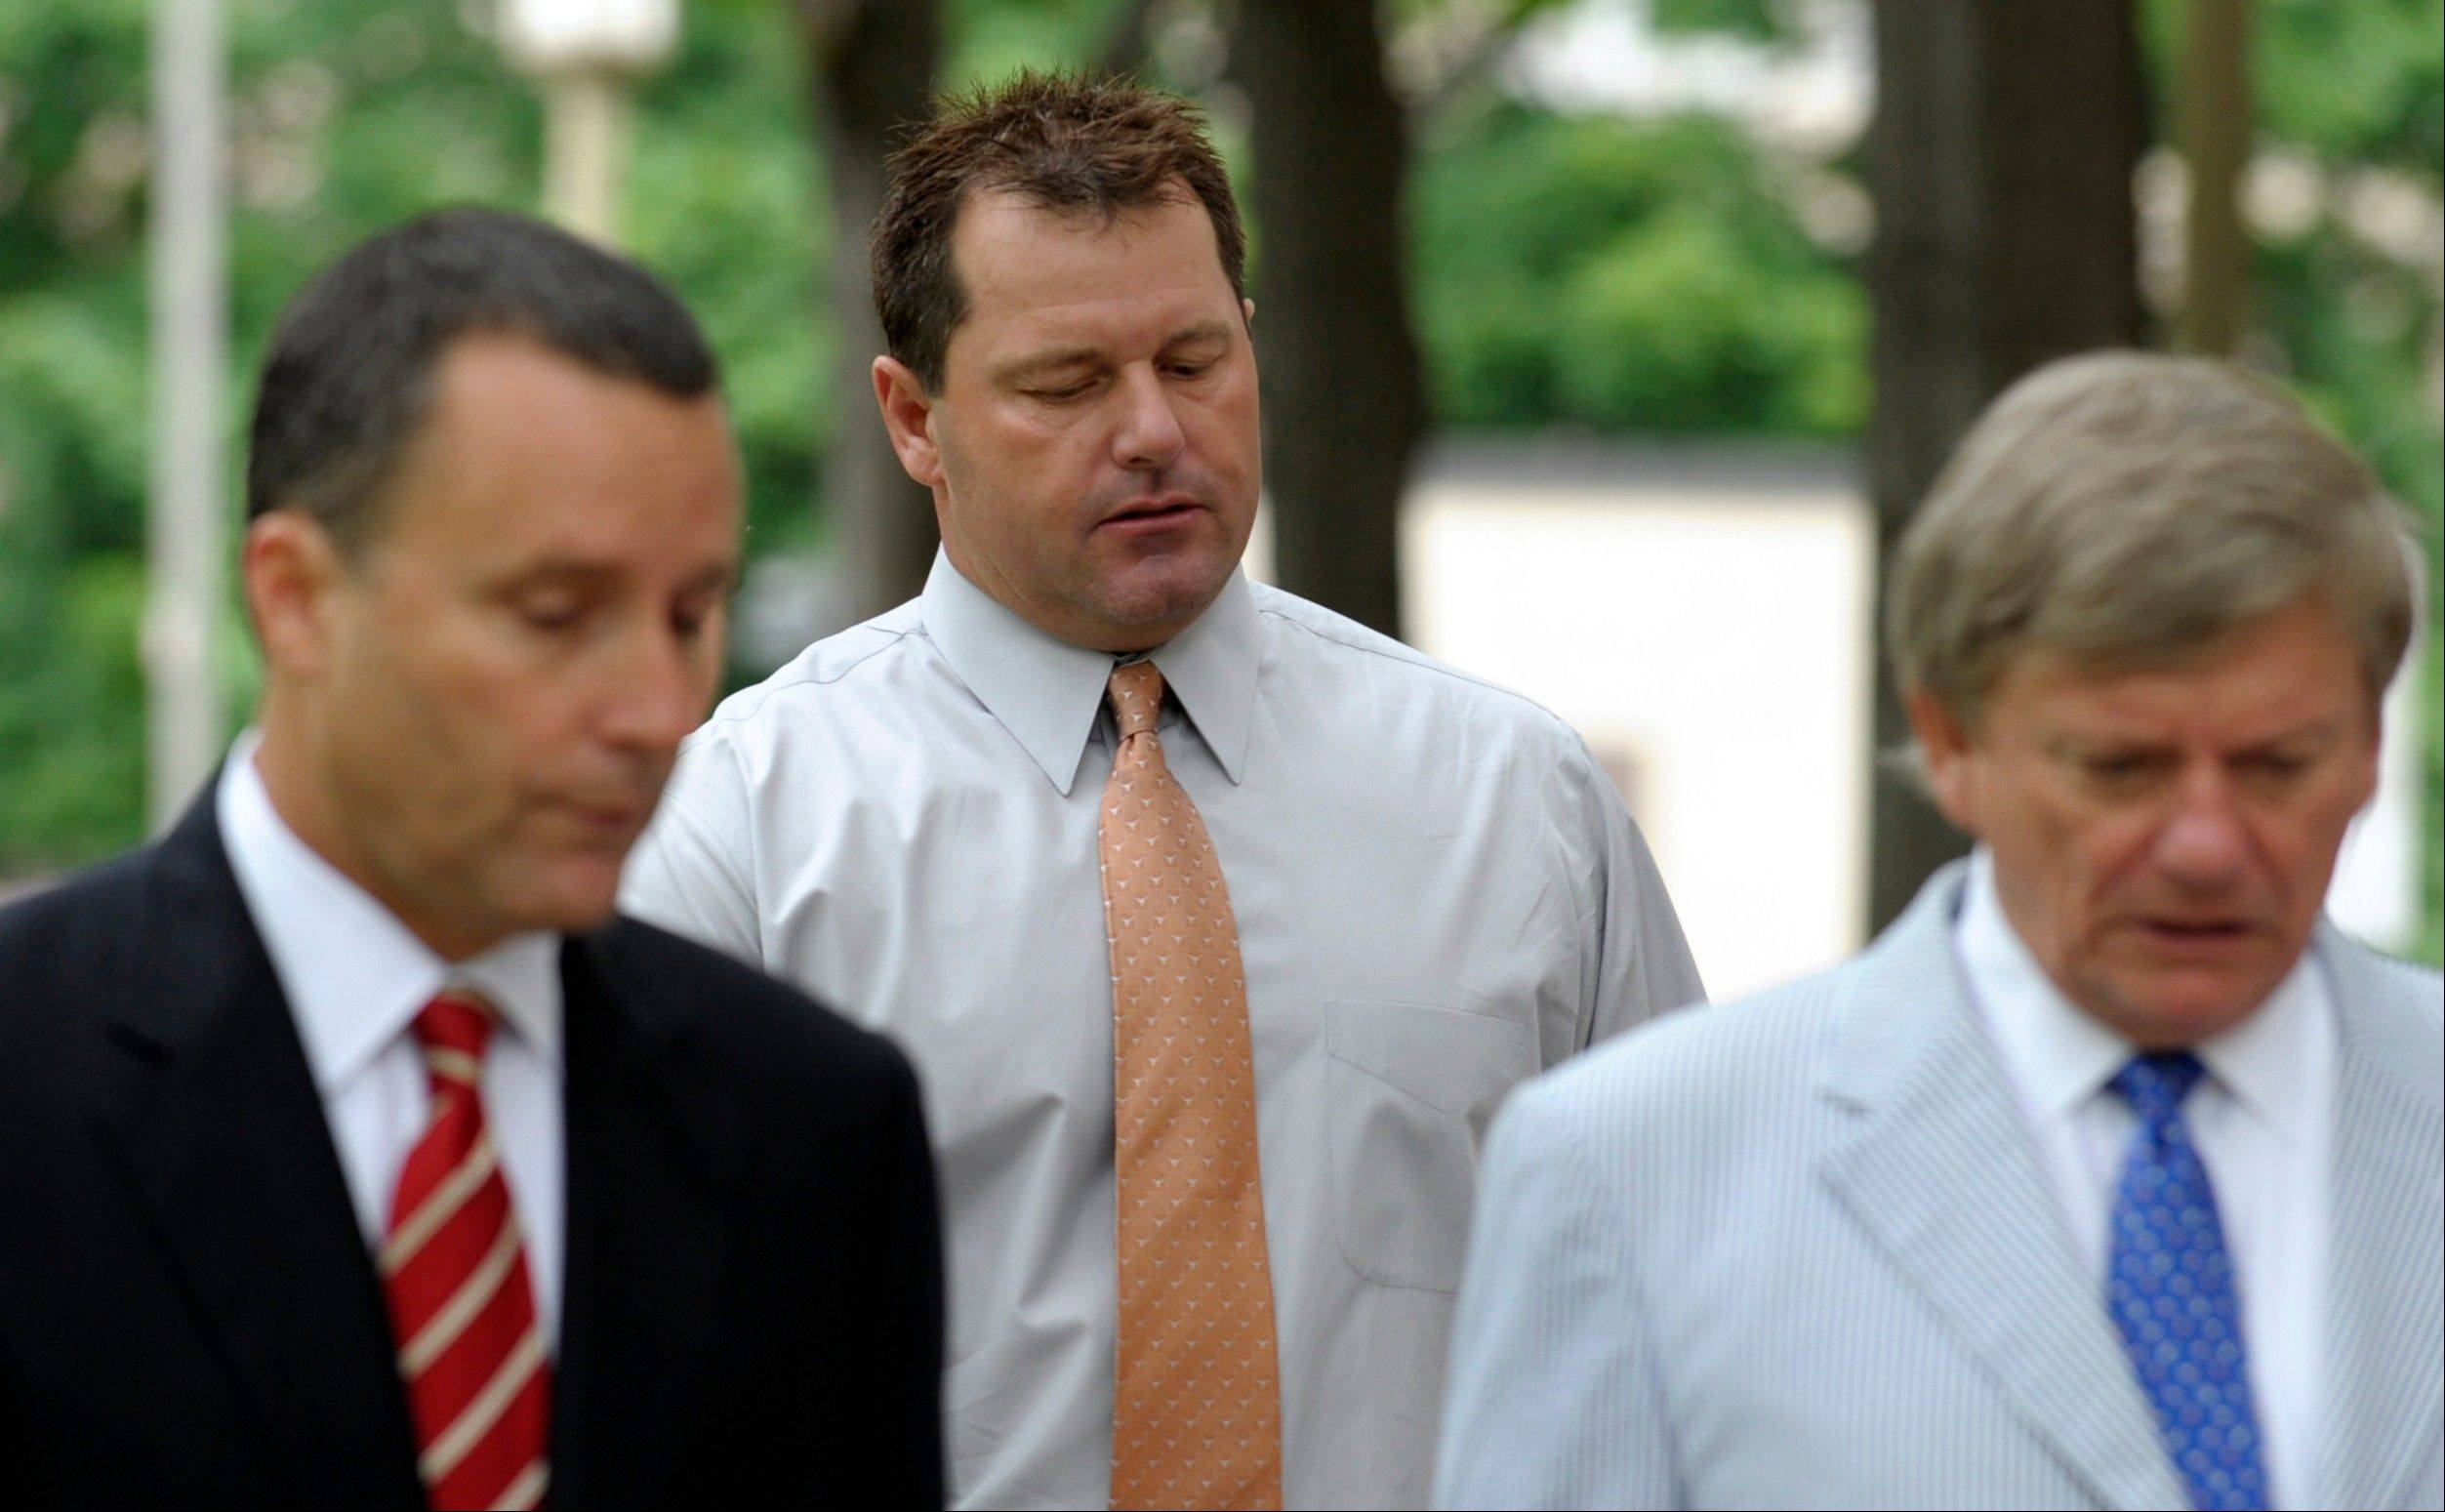 Former Major League baseball pitcher Roger Clemens, center, and his legal team, arrive Wednesday at federal court in Washington. Attorney Rusty Hardin is at right.